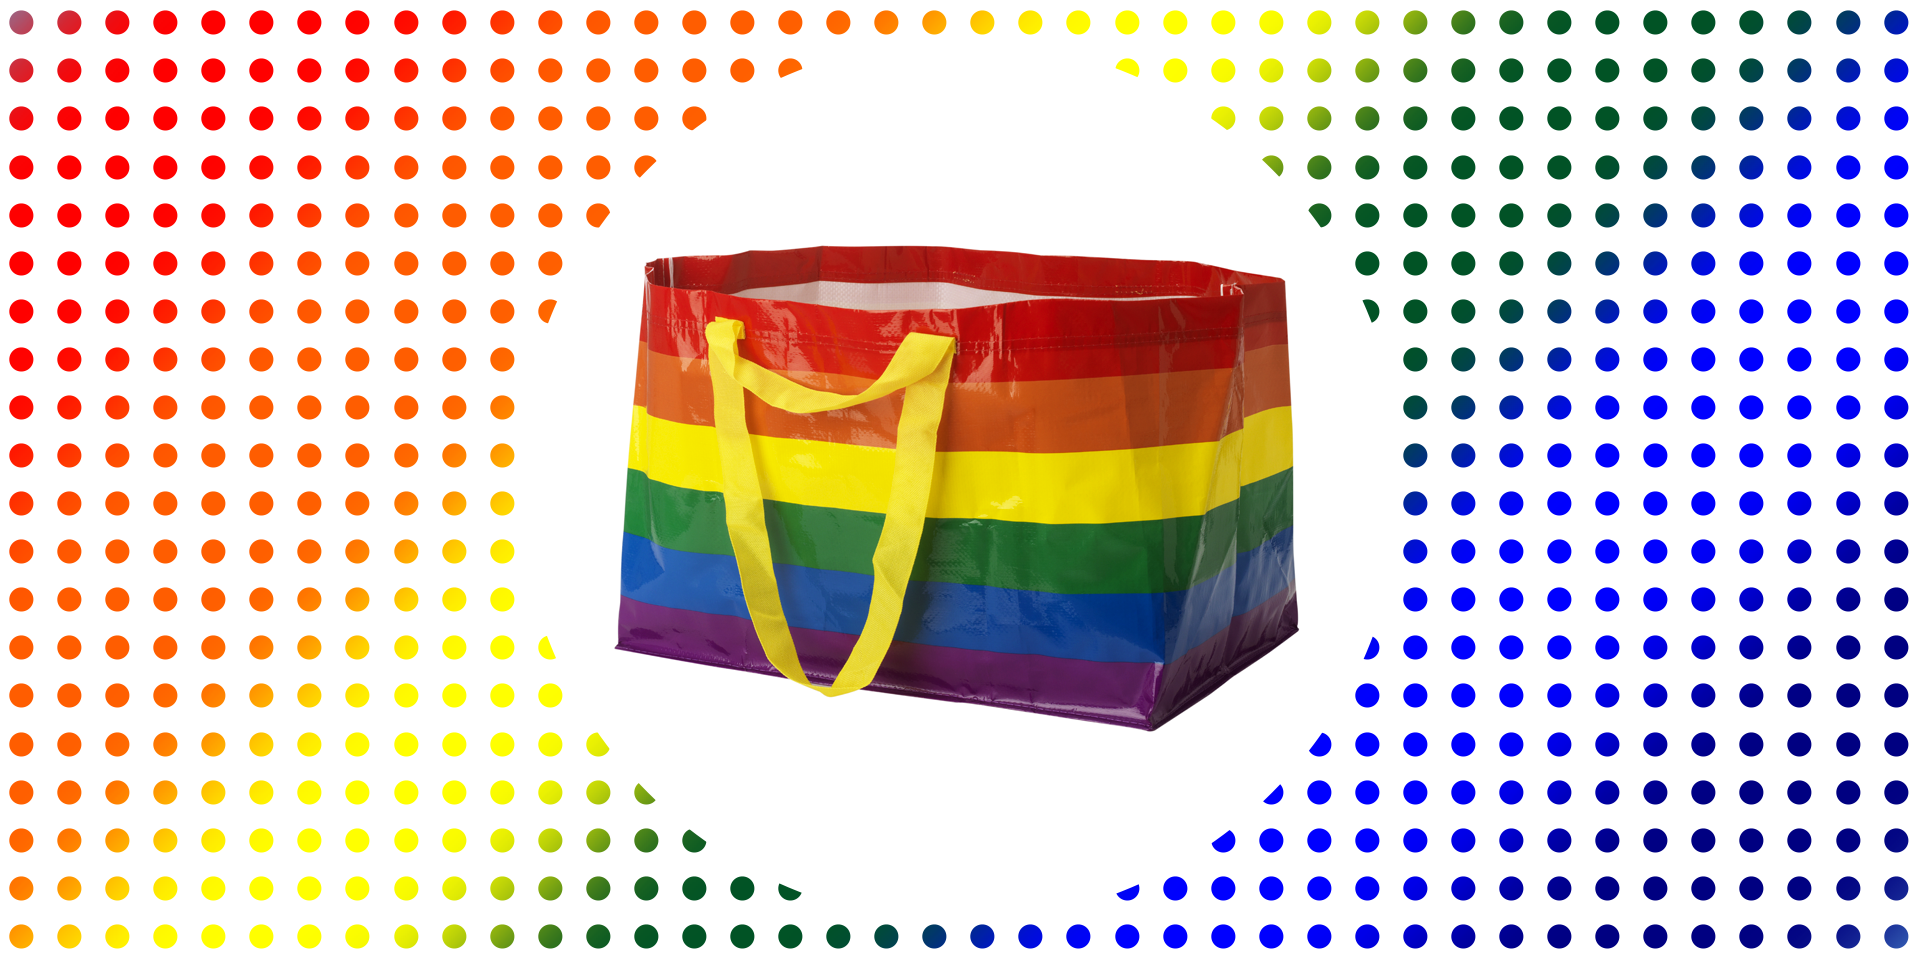 Ikea Releases Rainbow Kvanting Shopping Bag for Pride Month